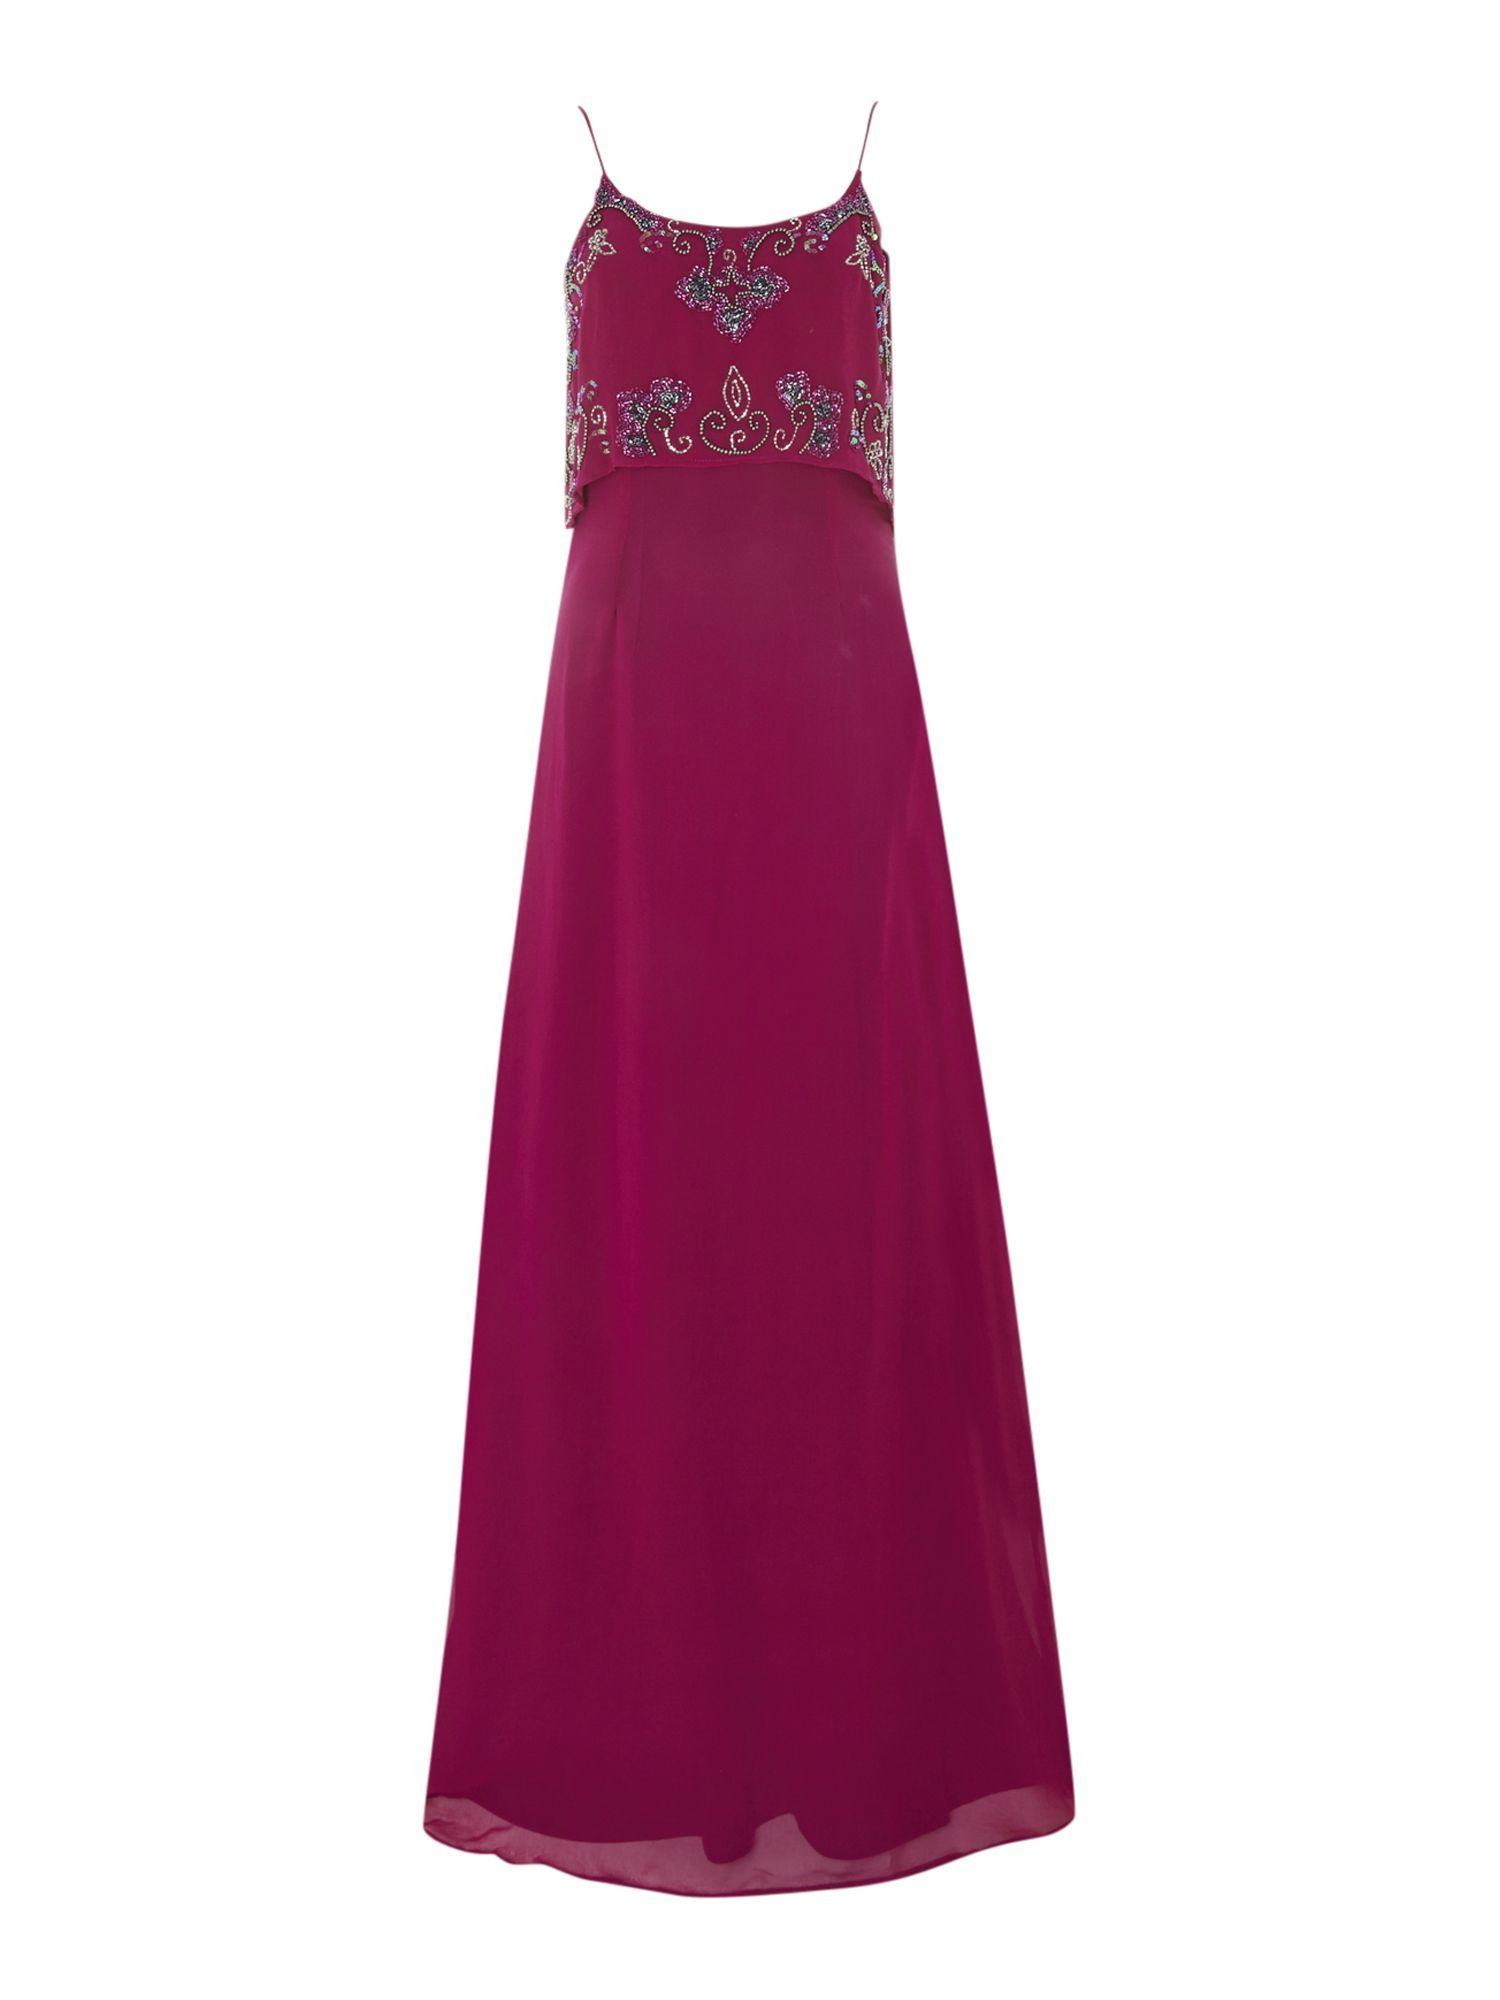 S style dresses uk great gatsby to downton abbey s style